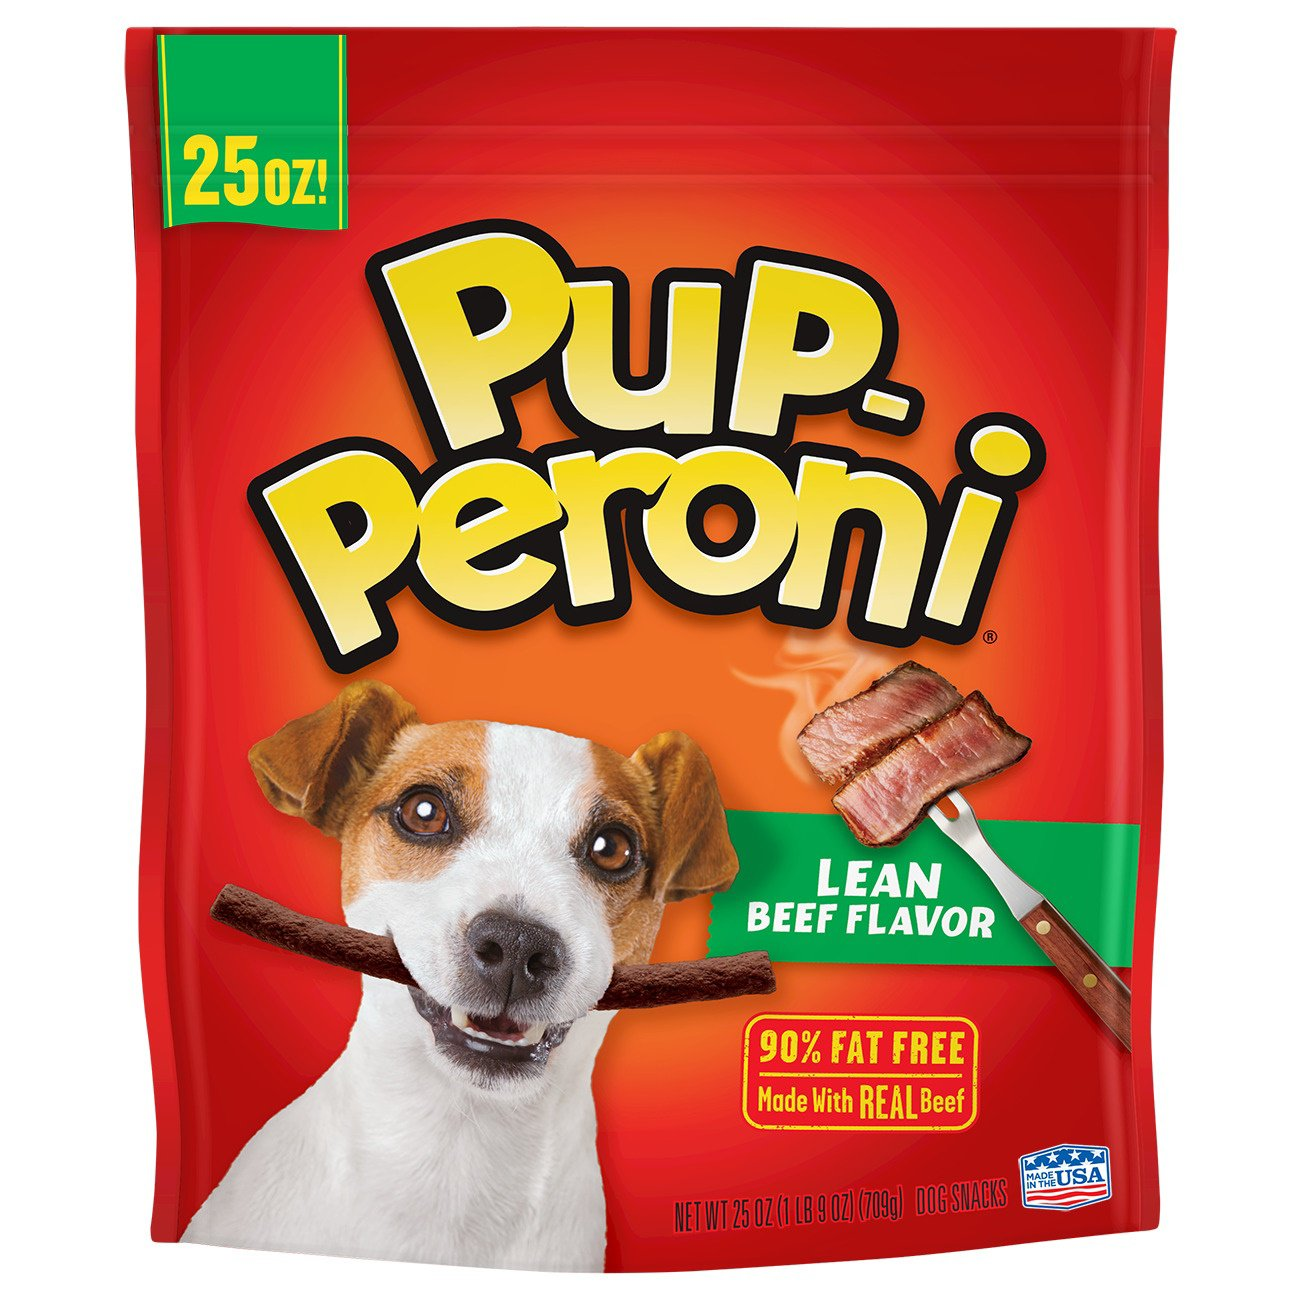 Pup-Peroni Lean Beef Flavor Dog Treats, 25 oz.